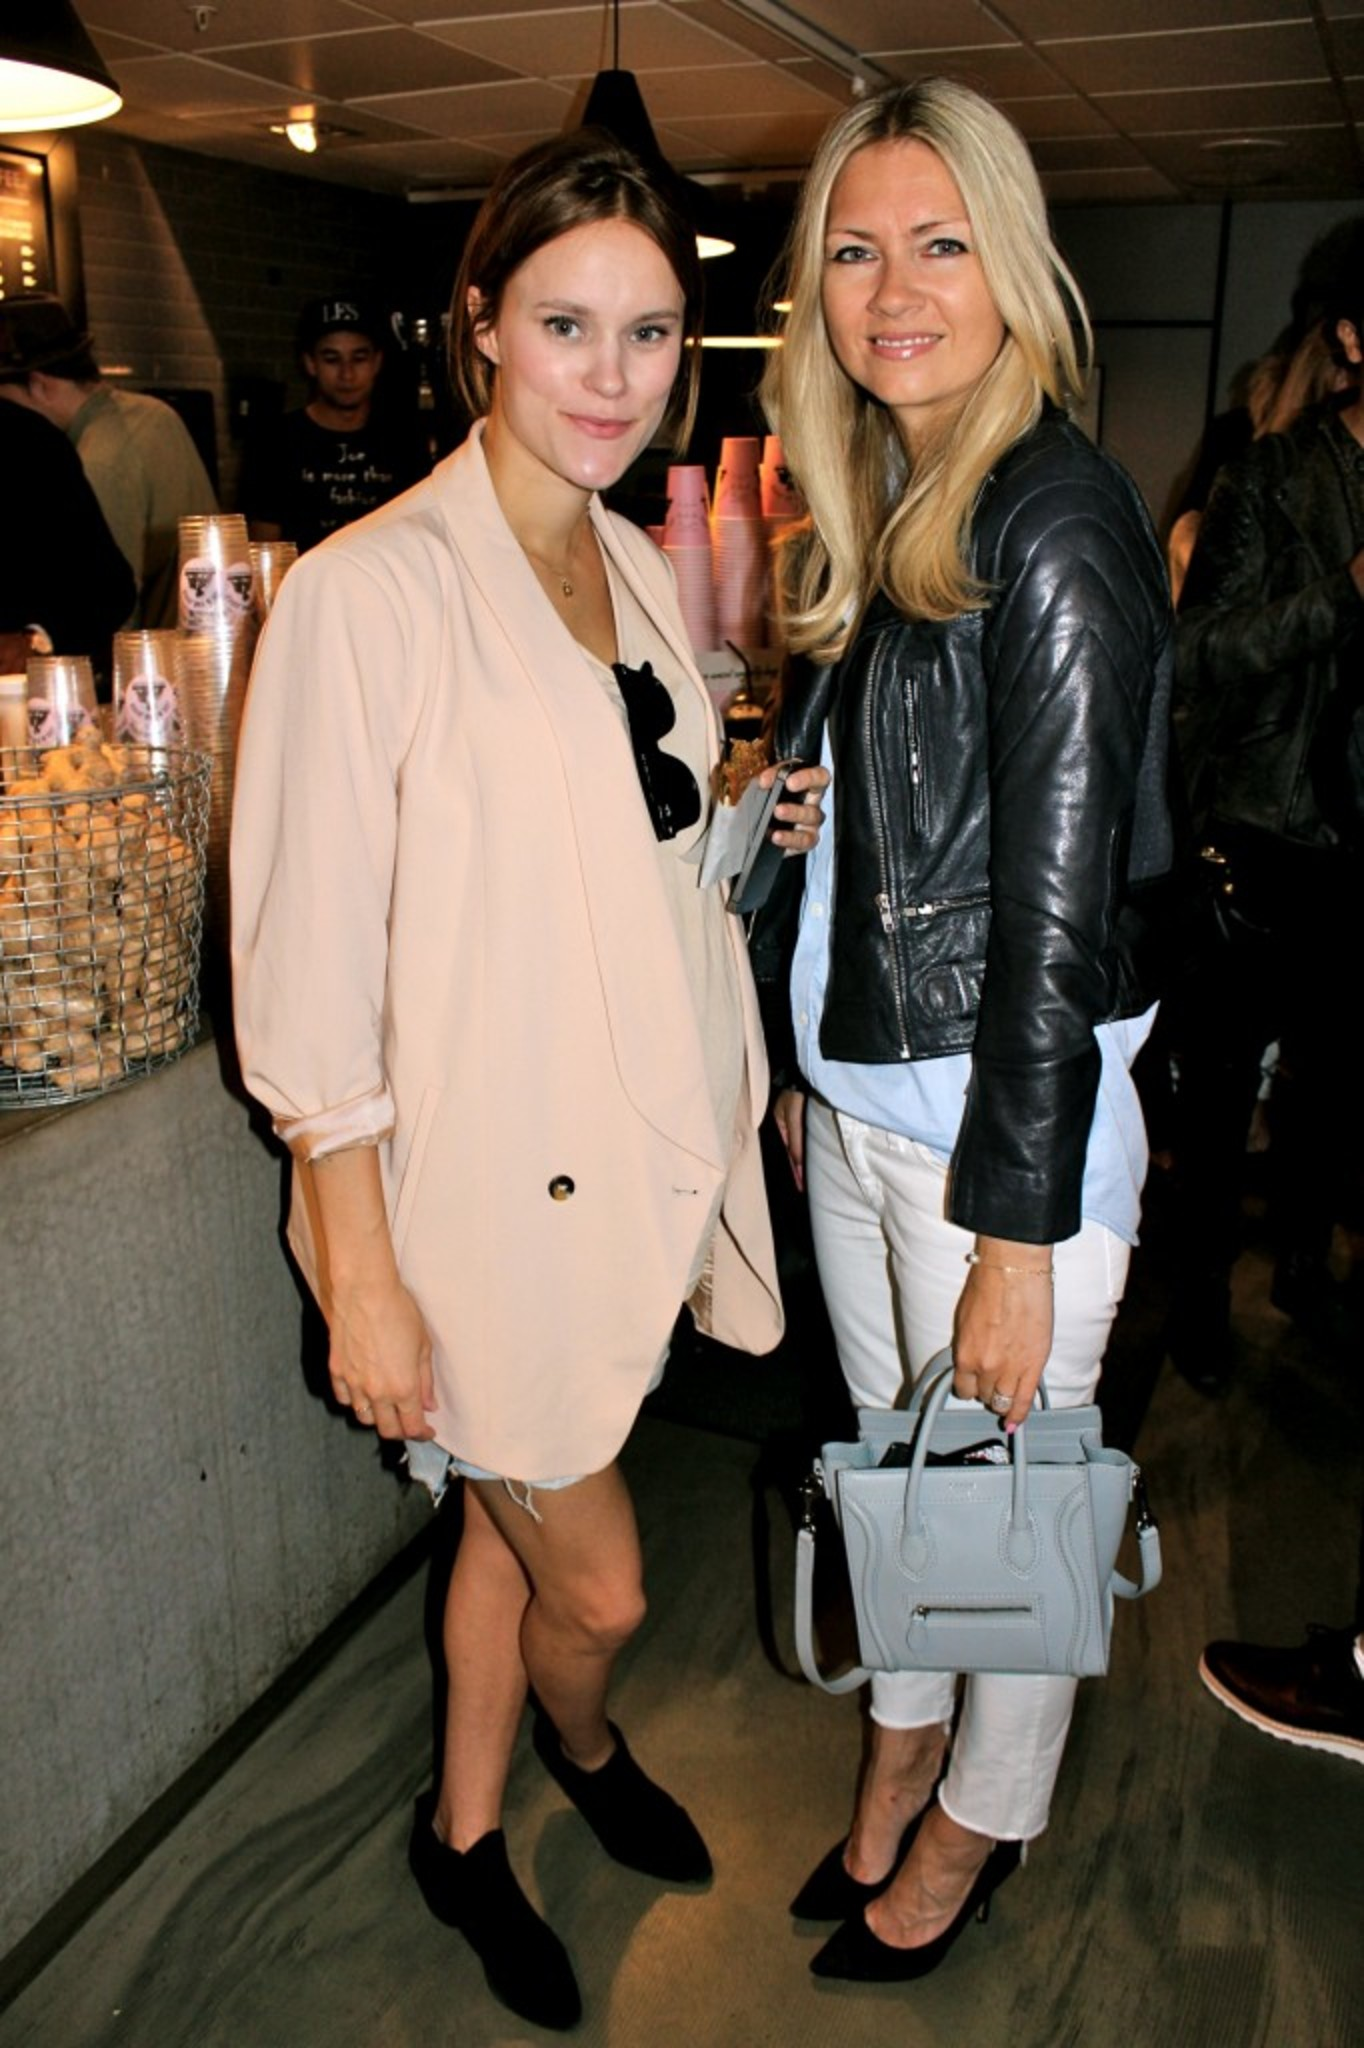 Beautiful Sara Strand & Fashionista Silje <3